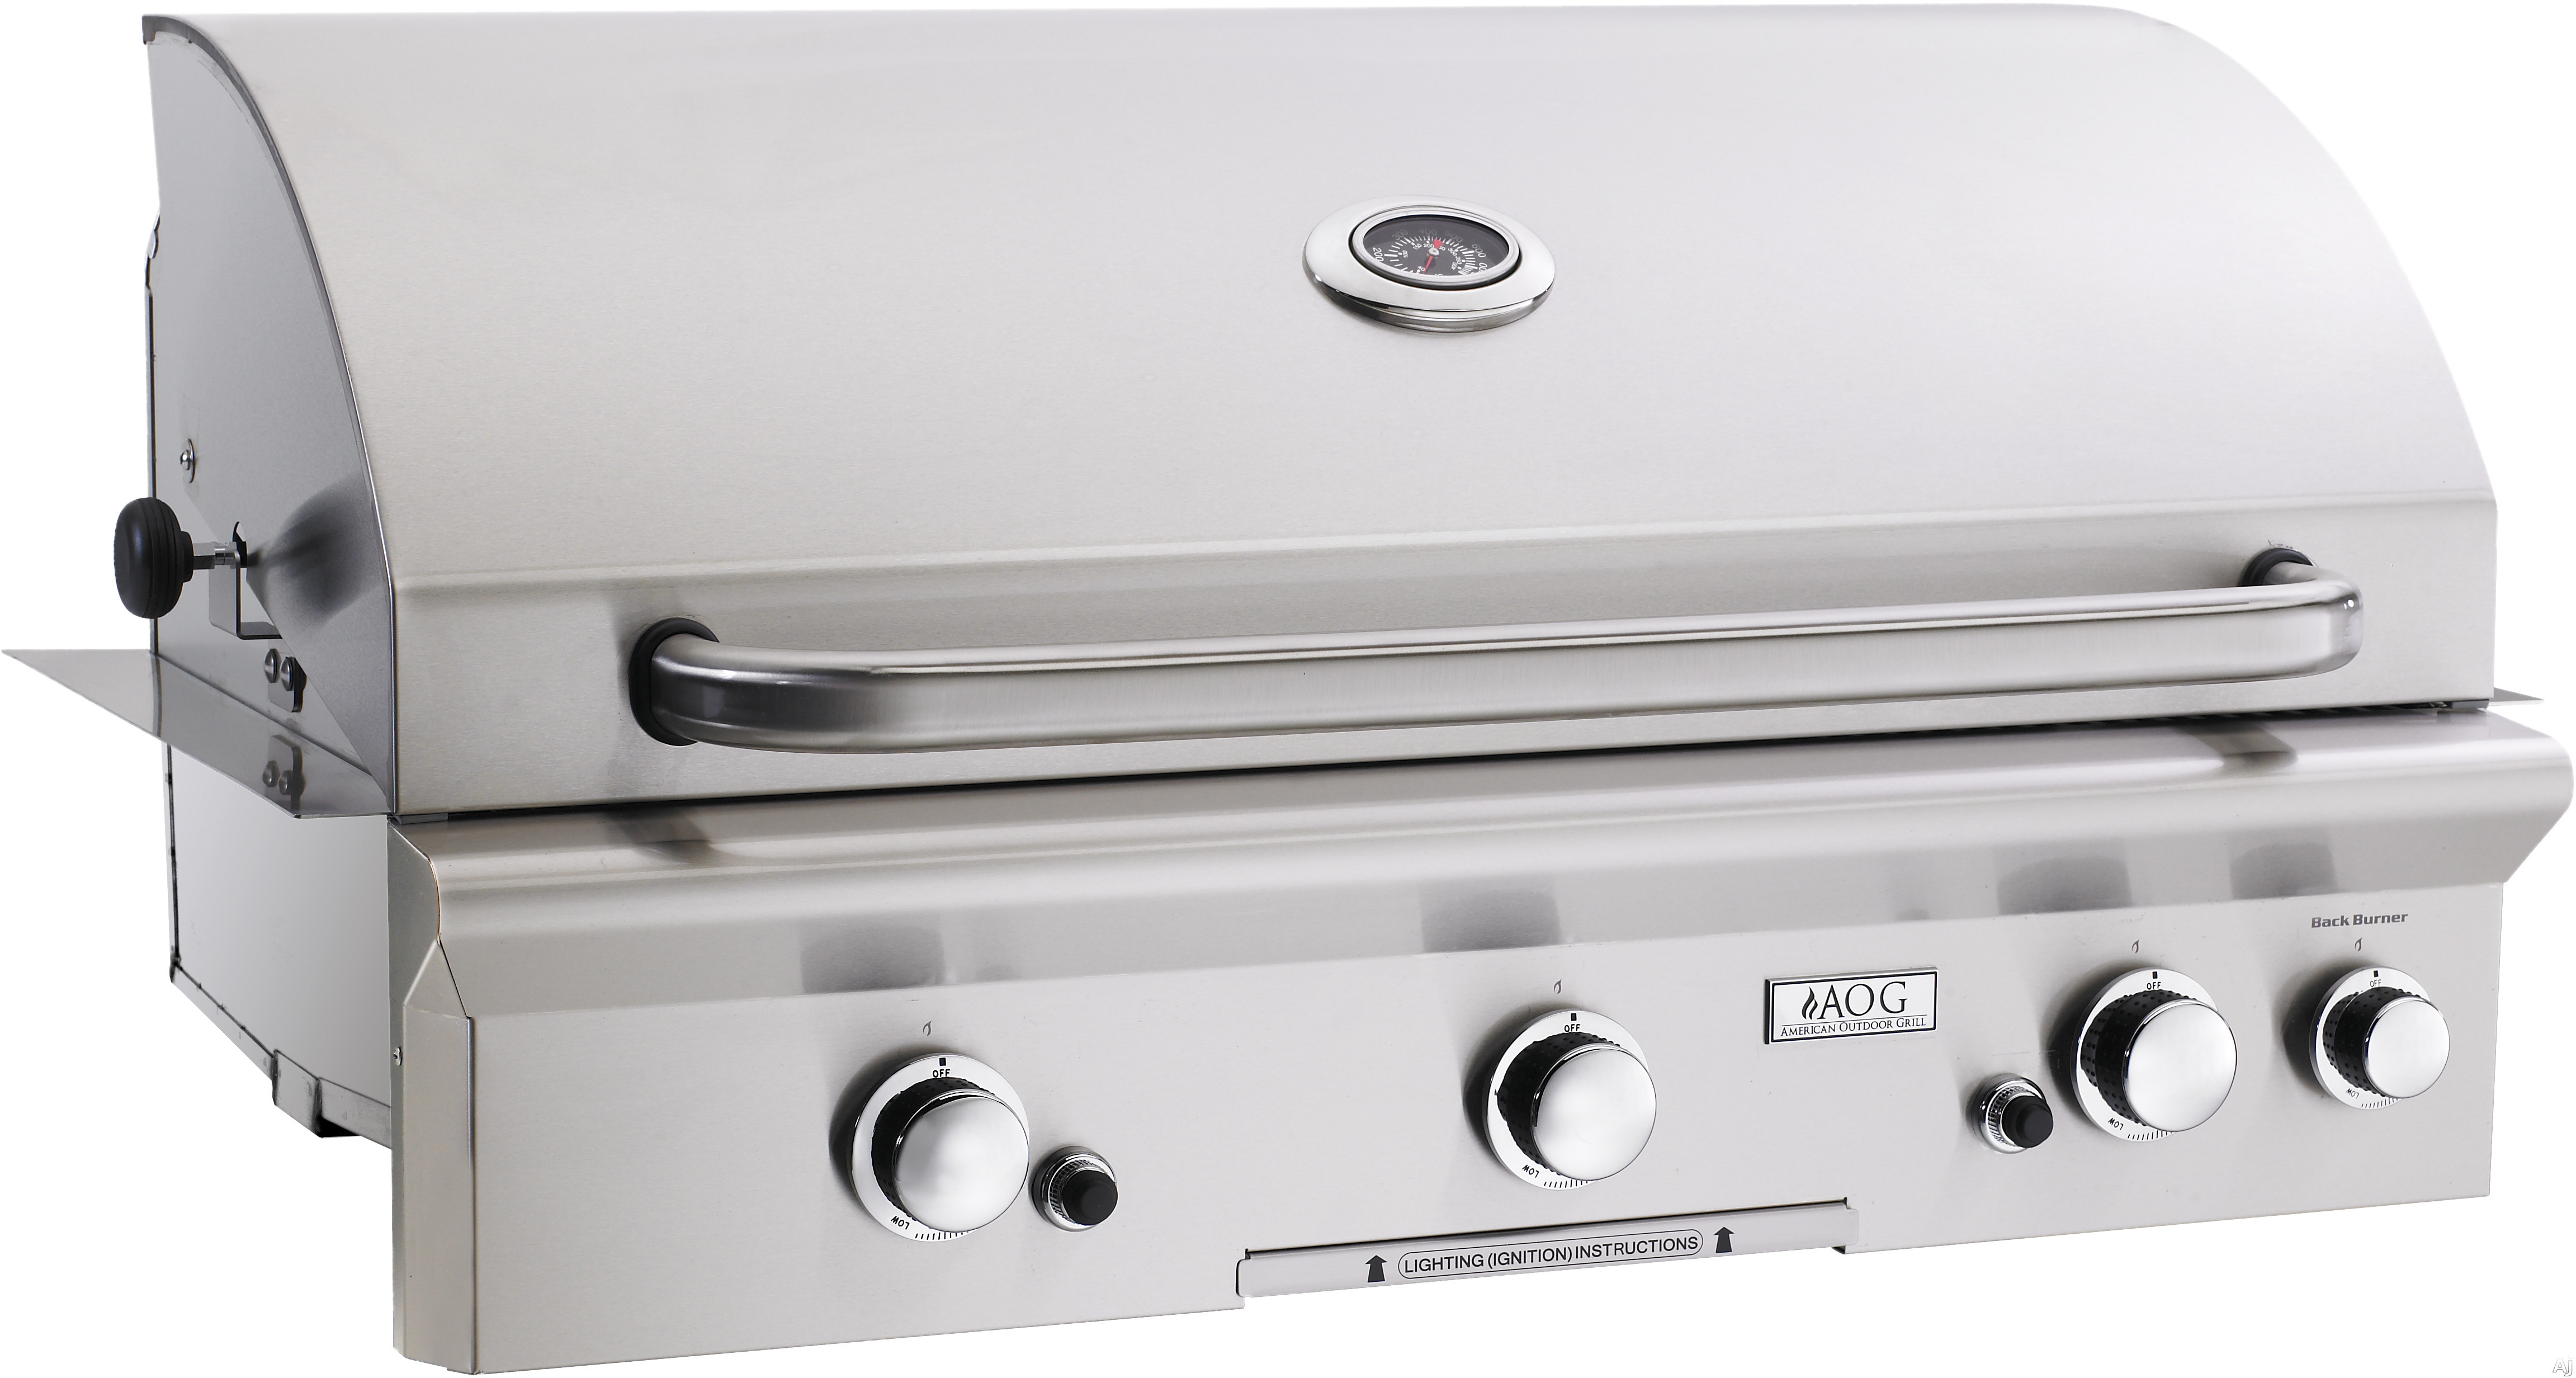 """American Outdoor Grill 36NBX 36"""" Built-in Gas Grill with 648 sq. in. Cooking Surface, 61,000 Total, U.S. & Canada 36NBX"""